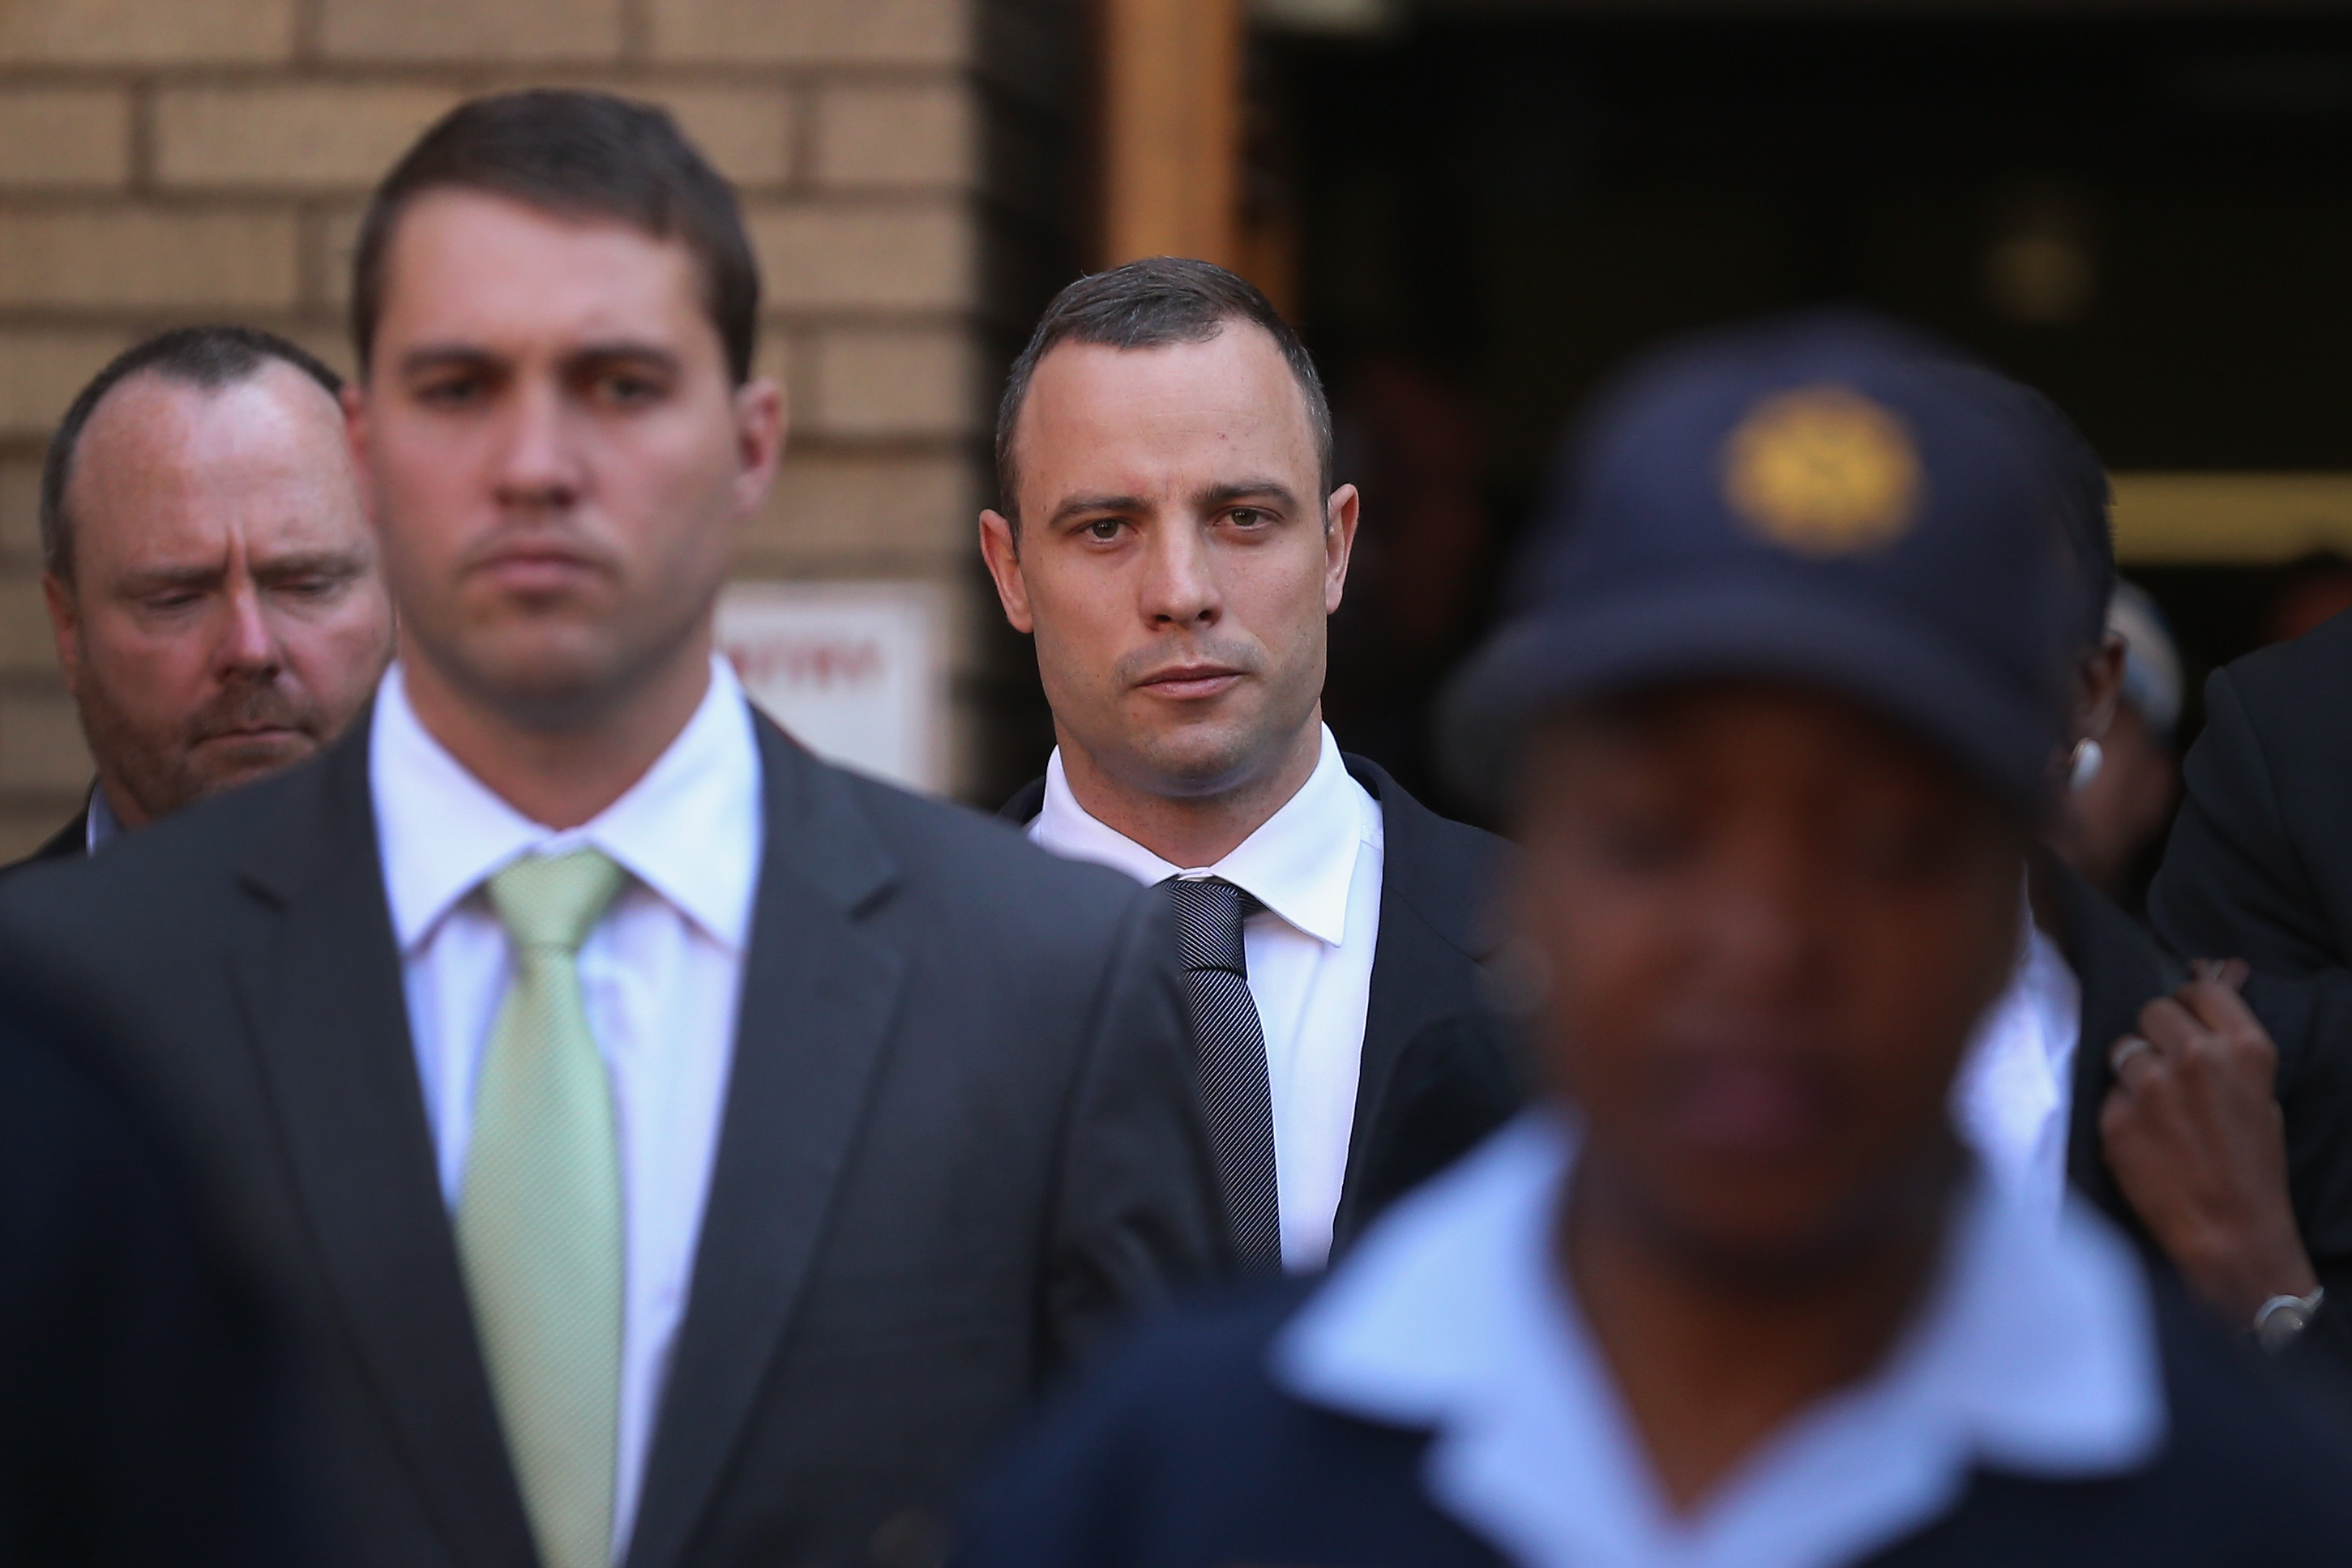 Oscar Pistorius leaves North Gauteng High Court after the judge ordered tht he should undergo mental evaluation on May 14, 2014 in Pretoria, South Africa.